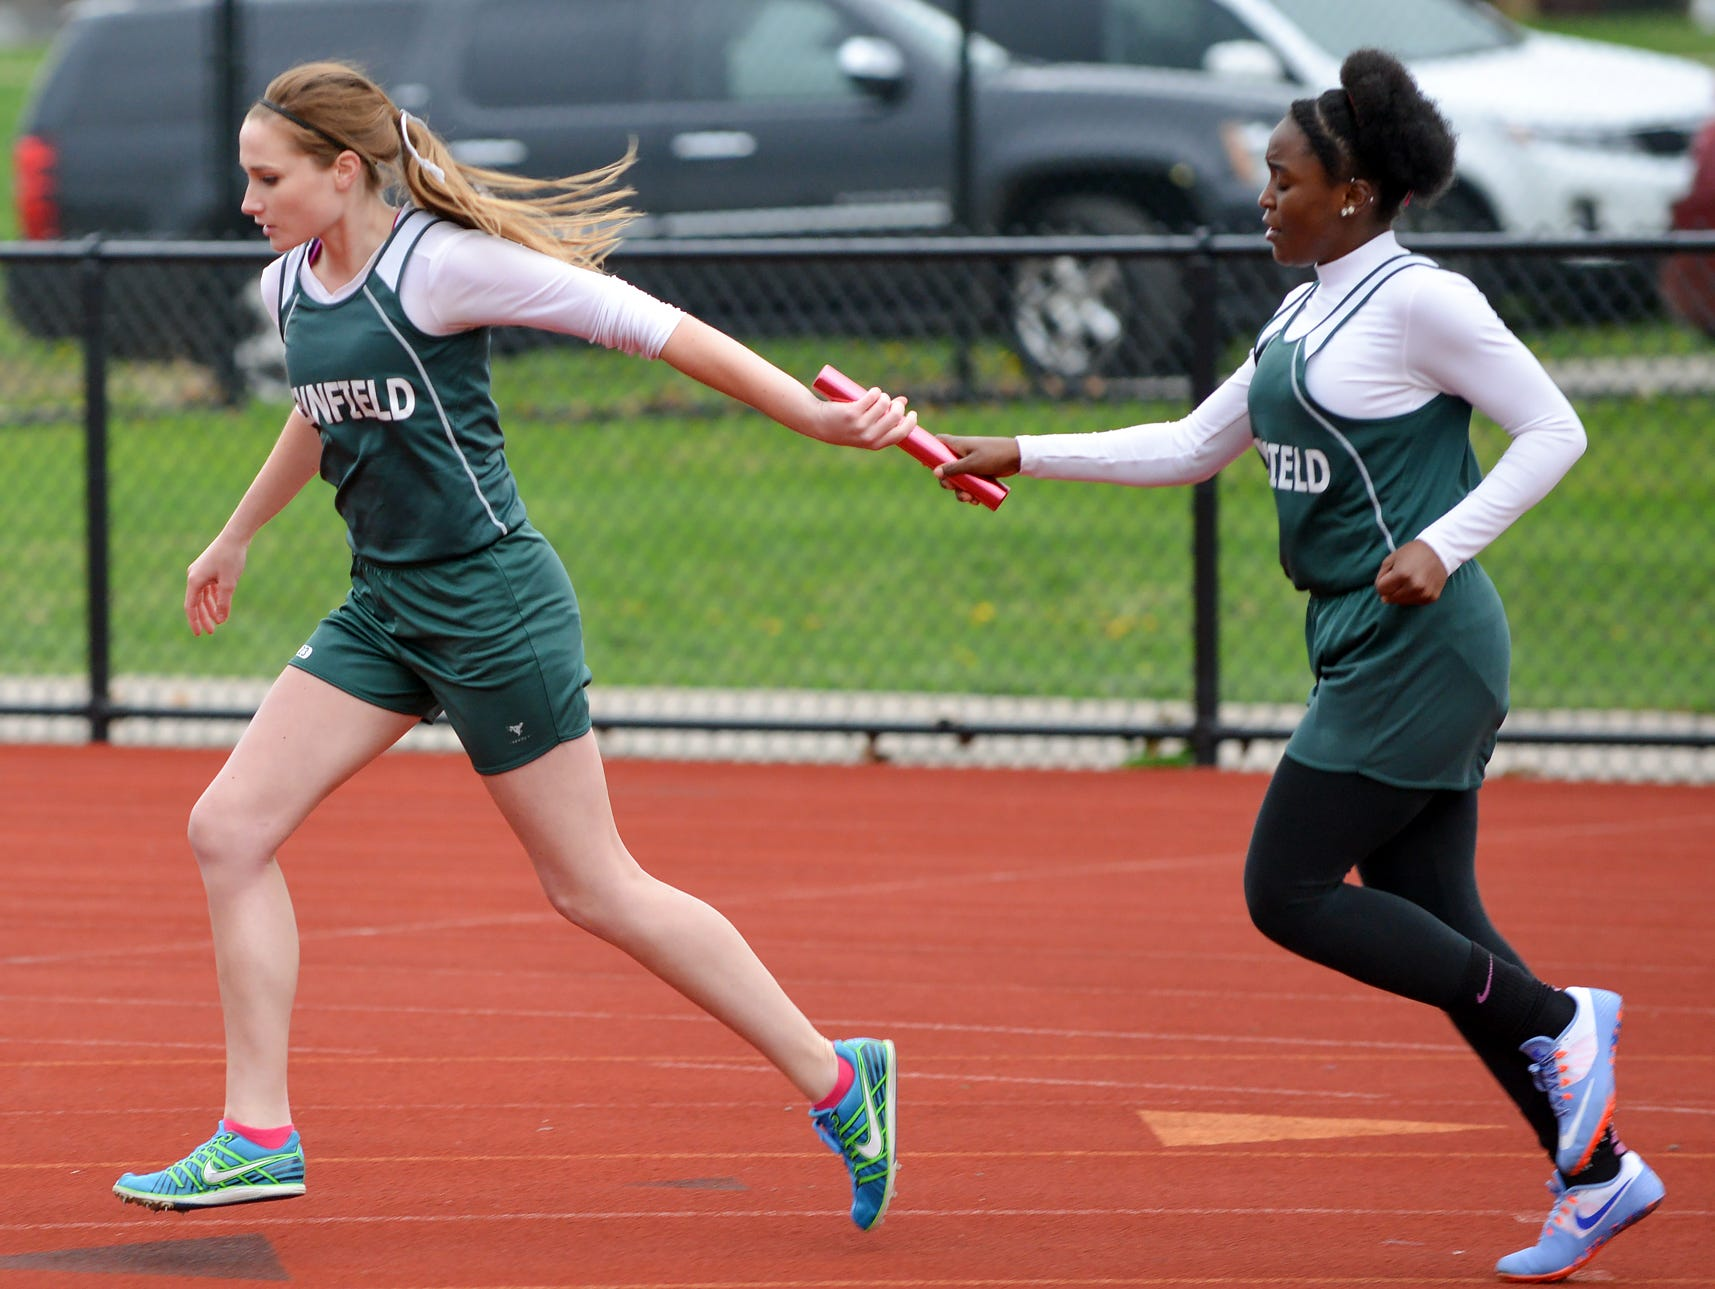 Pennfield participates in the 800 meter relay during Friday's 2016 All City Track Meet.